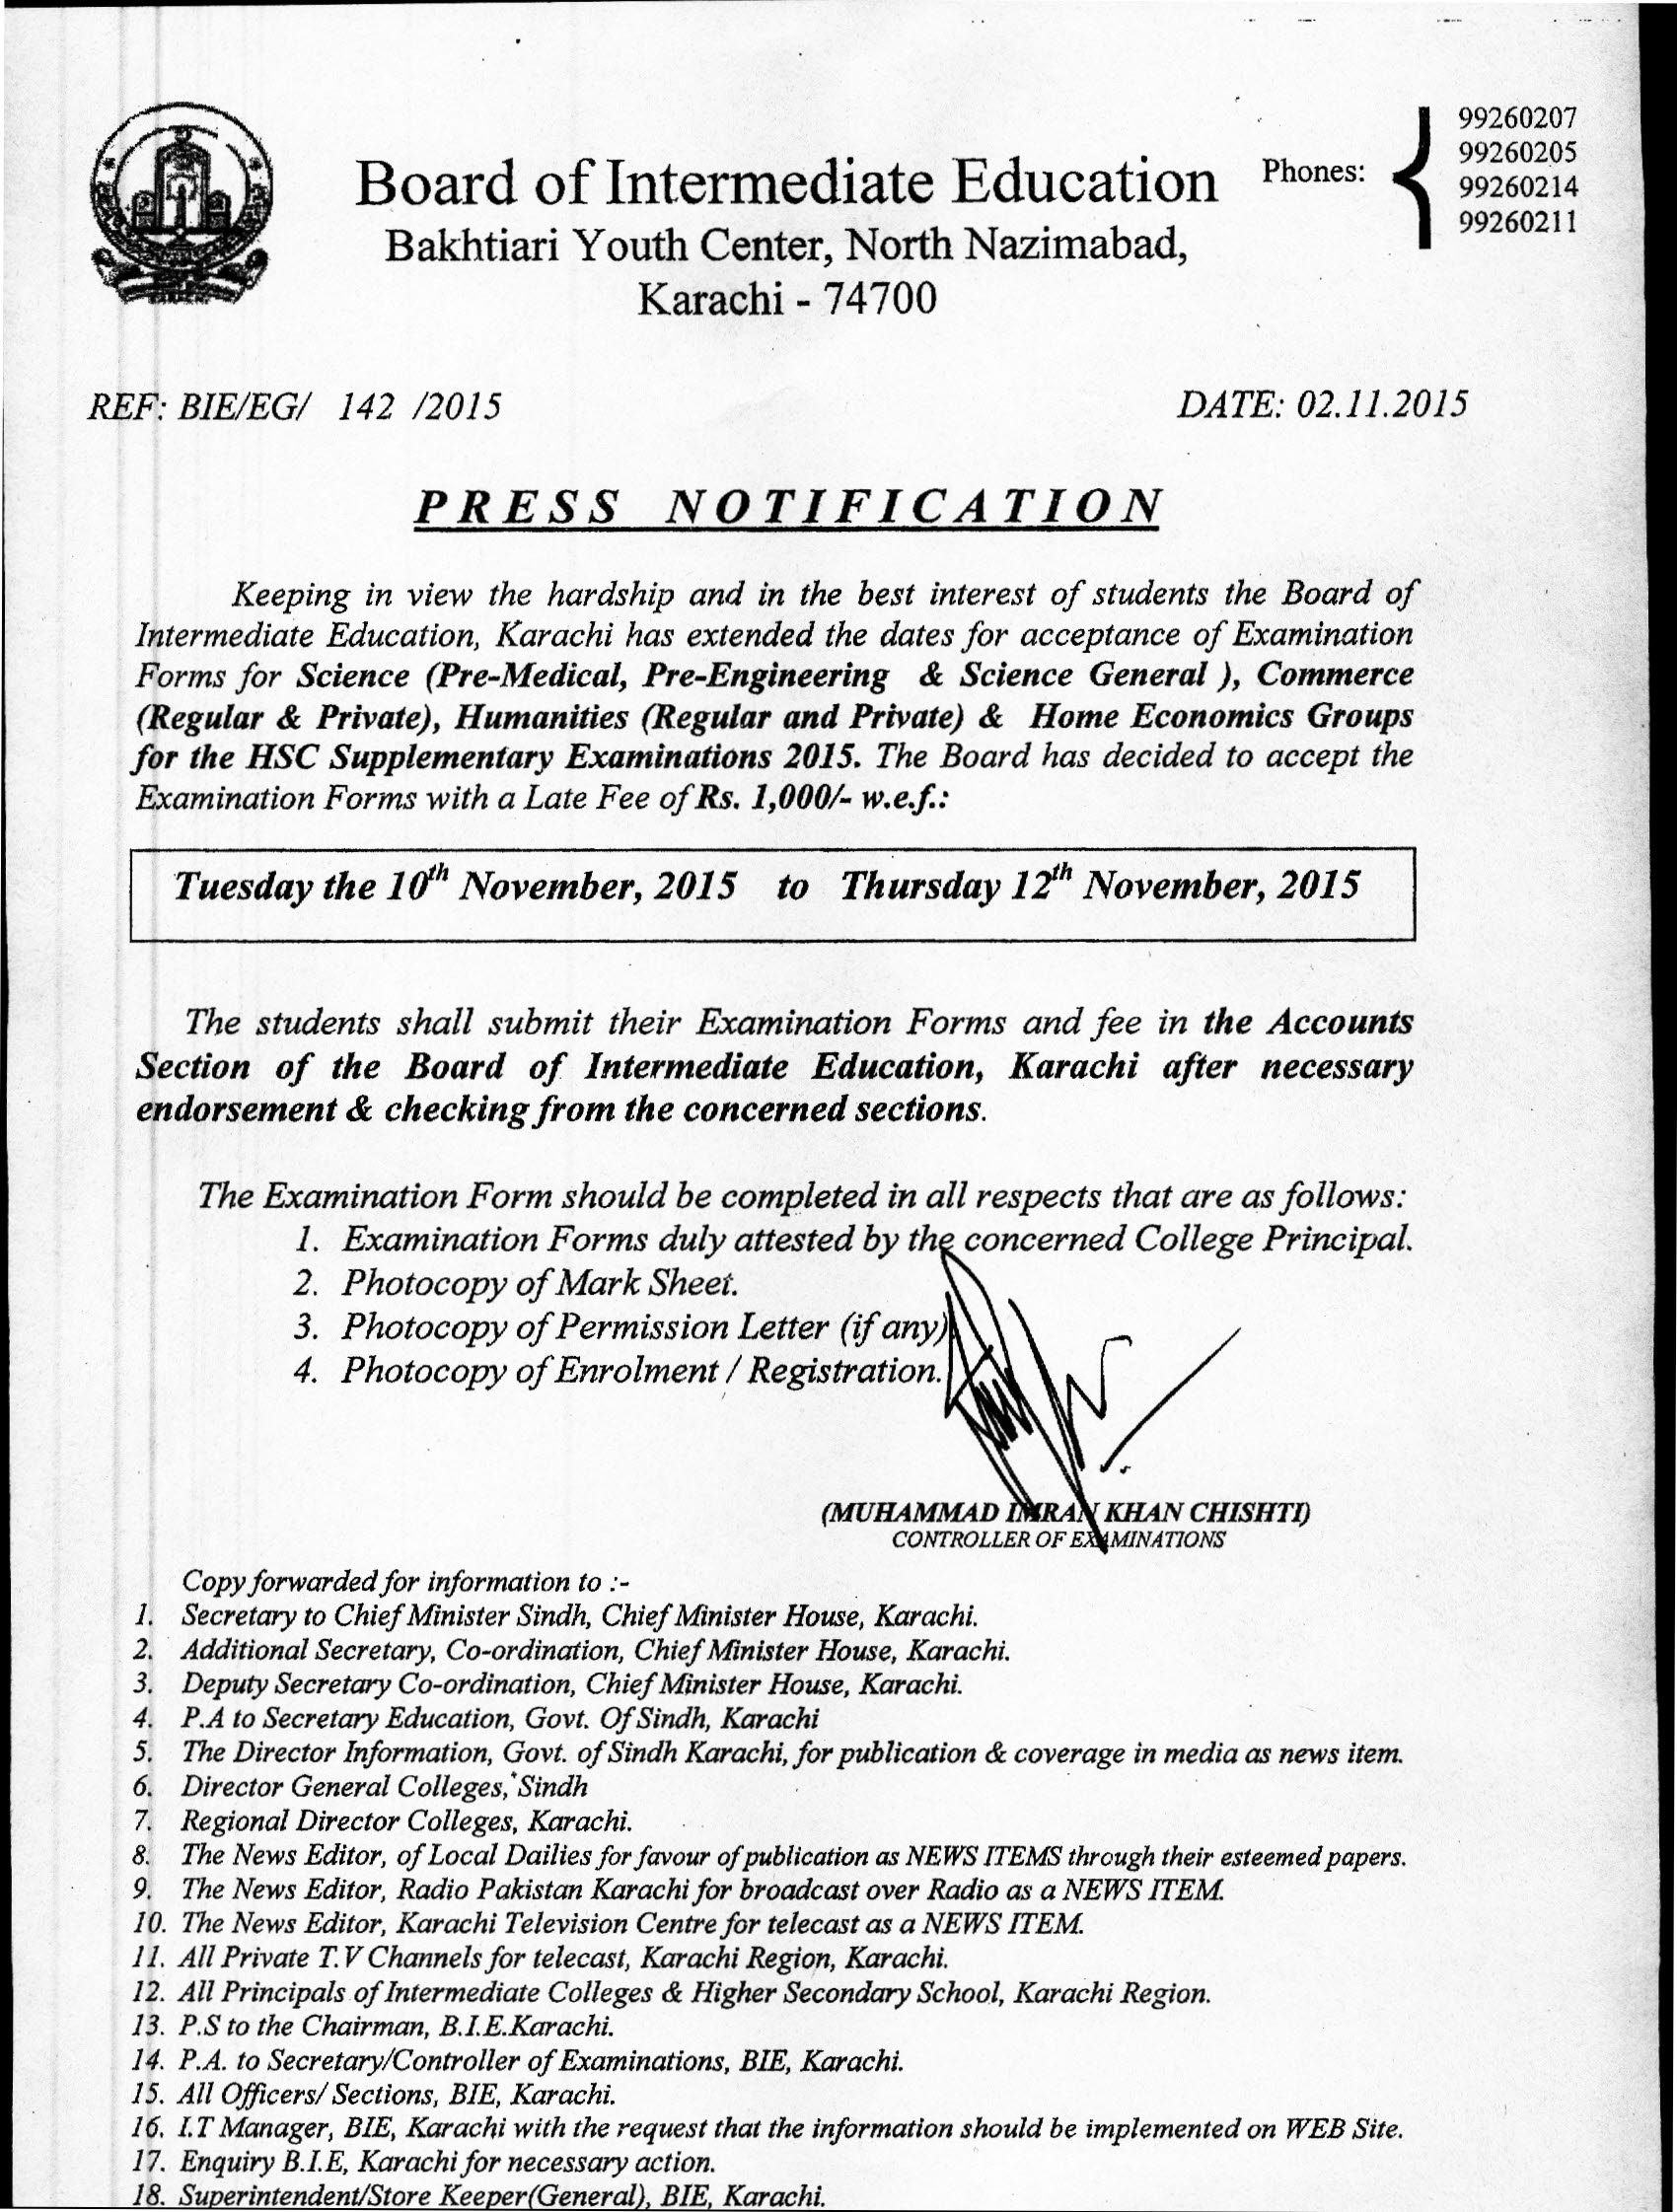 Press Notification Of Supplementary Examination Forms Submission Special Dates From 10th Nov